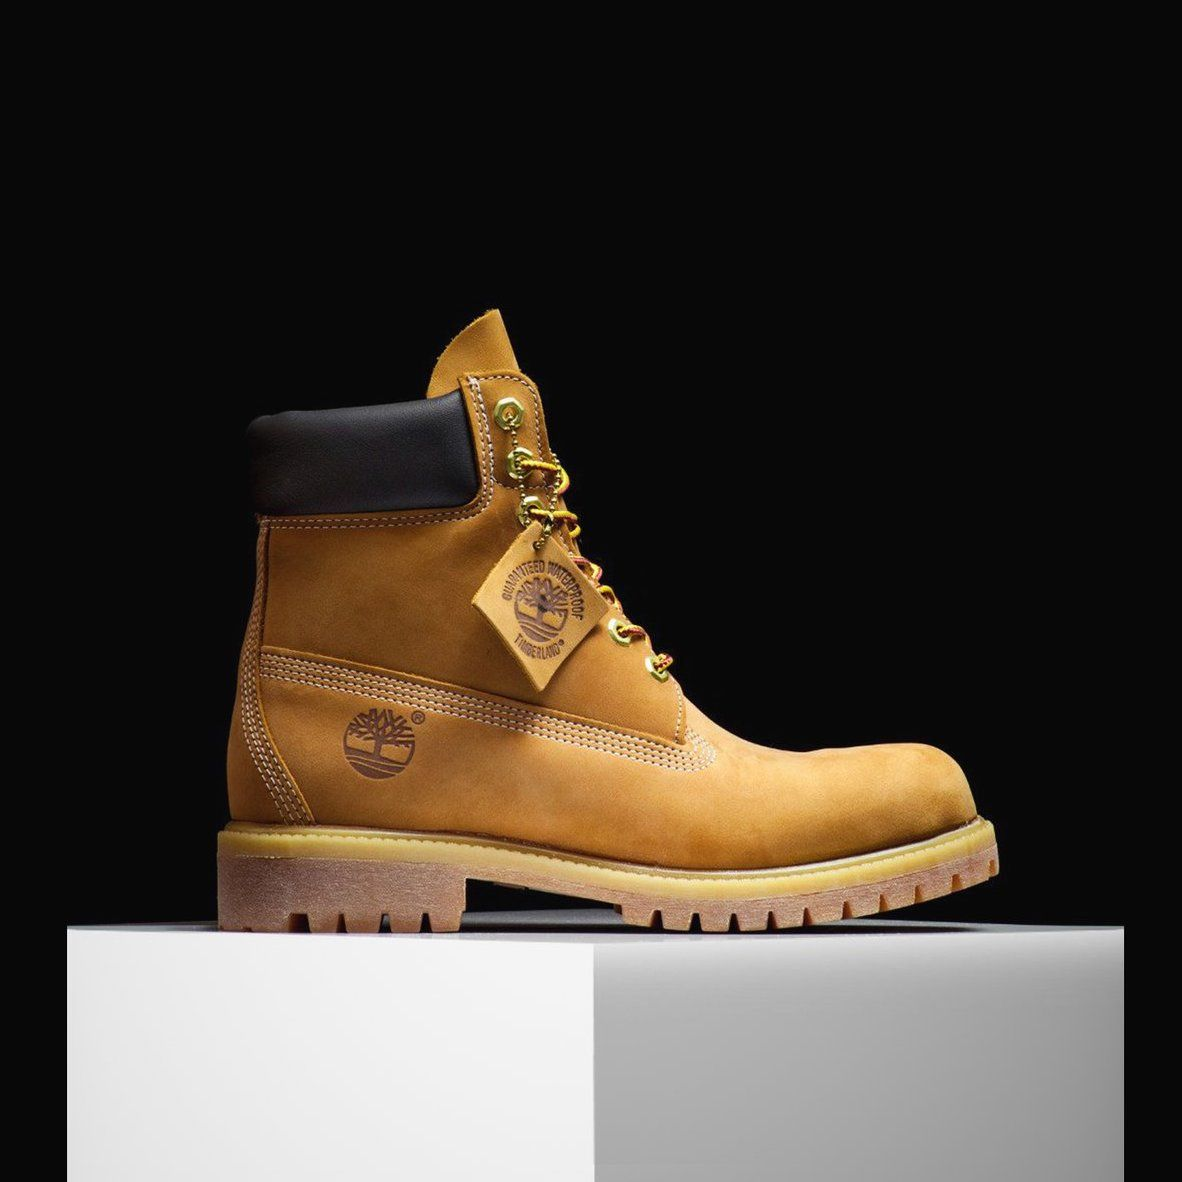 da3597999b264 20% OFF + FREE shipping on the Timberland 6-inch Premium Boots Wheat   http   bit.ly 2hKf5b0 Black  http   bit.ly 2hKuQP9  pic.twitter.com dYb1q5wCat